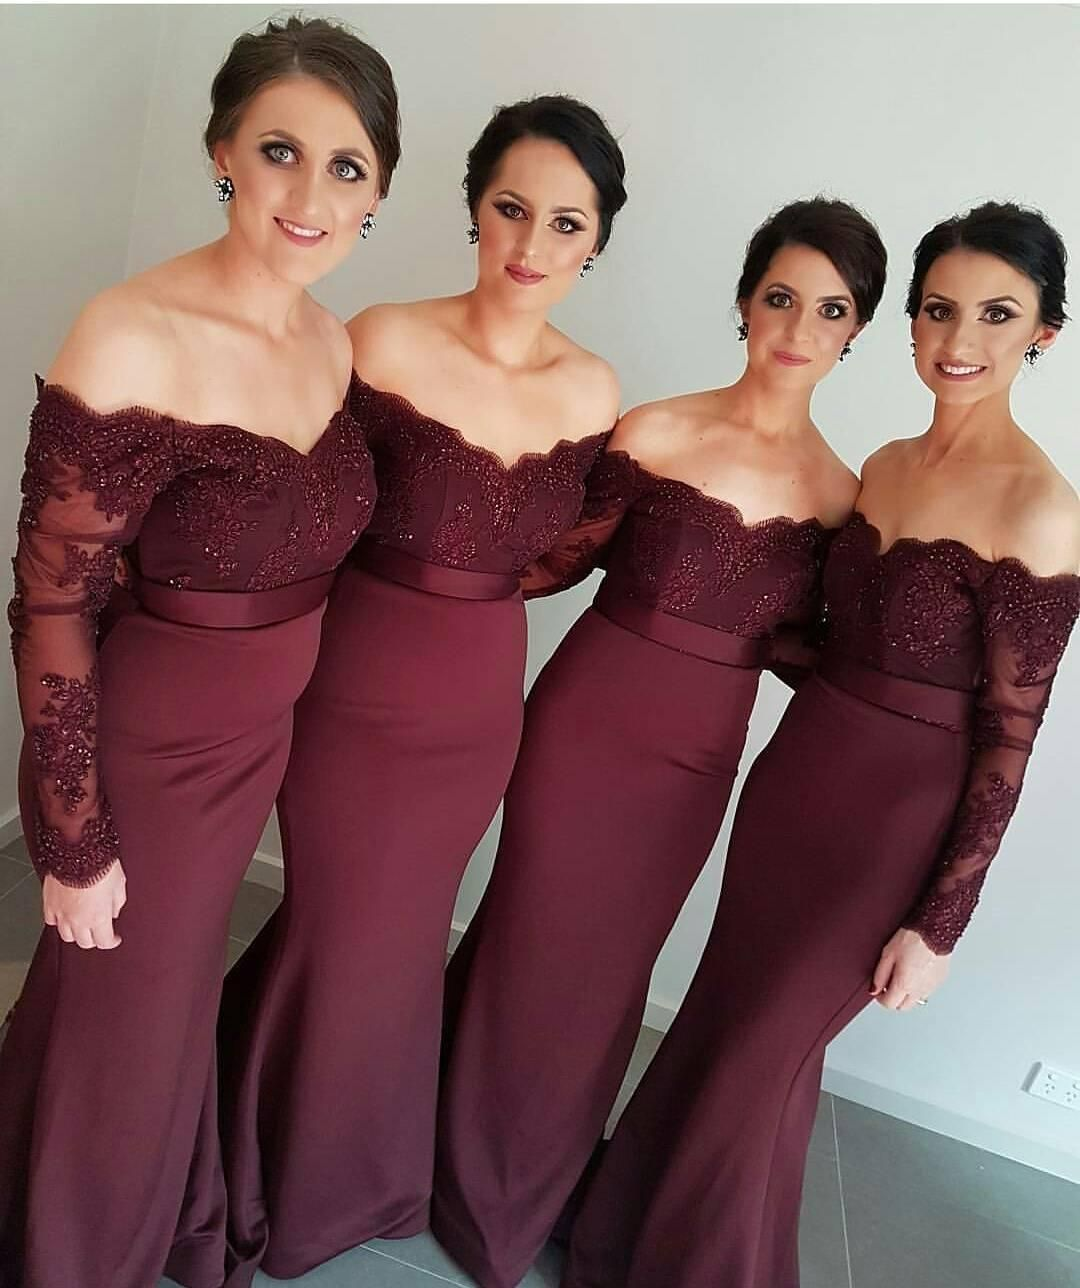 0ad9236dc3823 2016 New Cheap Burgundy Mermaid Bridesmaid Dresses Off Shoulder Lace Beaded  Long Sleeves Custom Floor Length For Wedding Maid of Honor Gowns Online  with ...